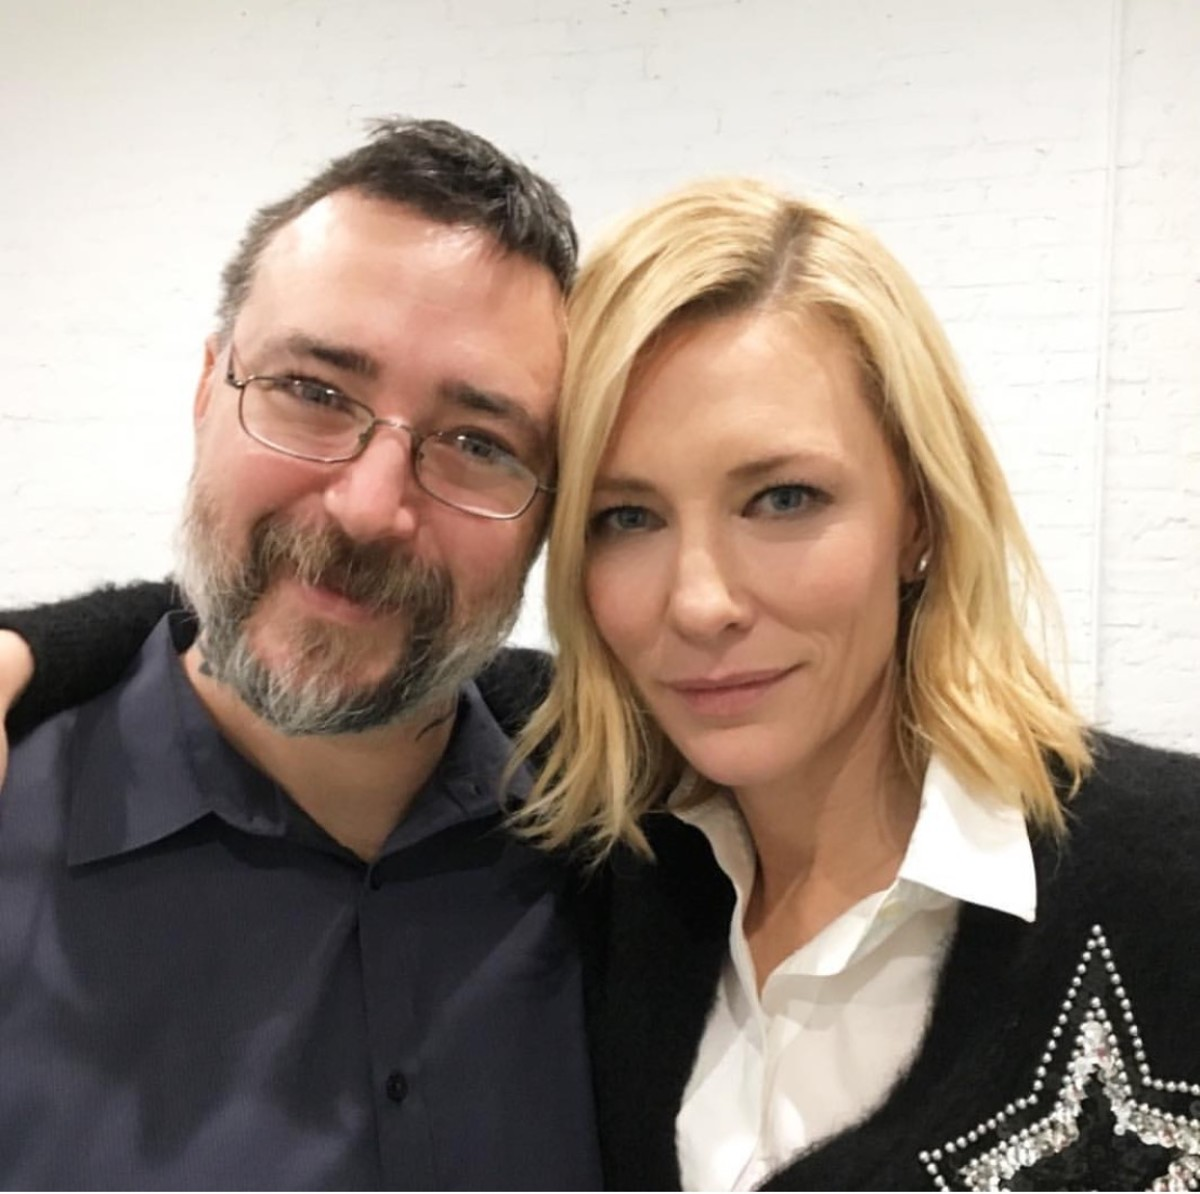 Josh Lord and Cate Blanchett